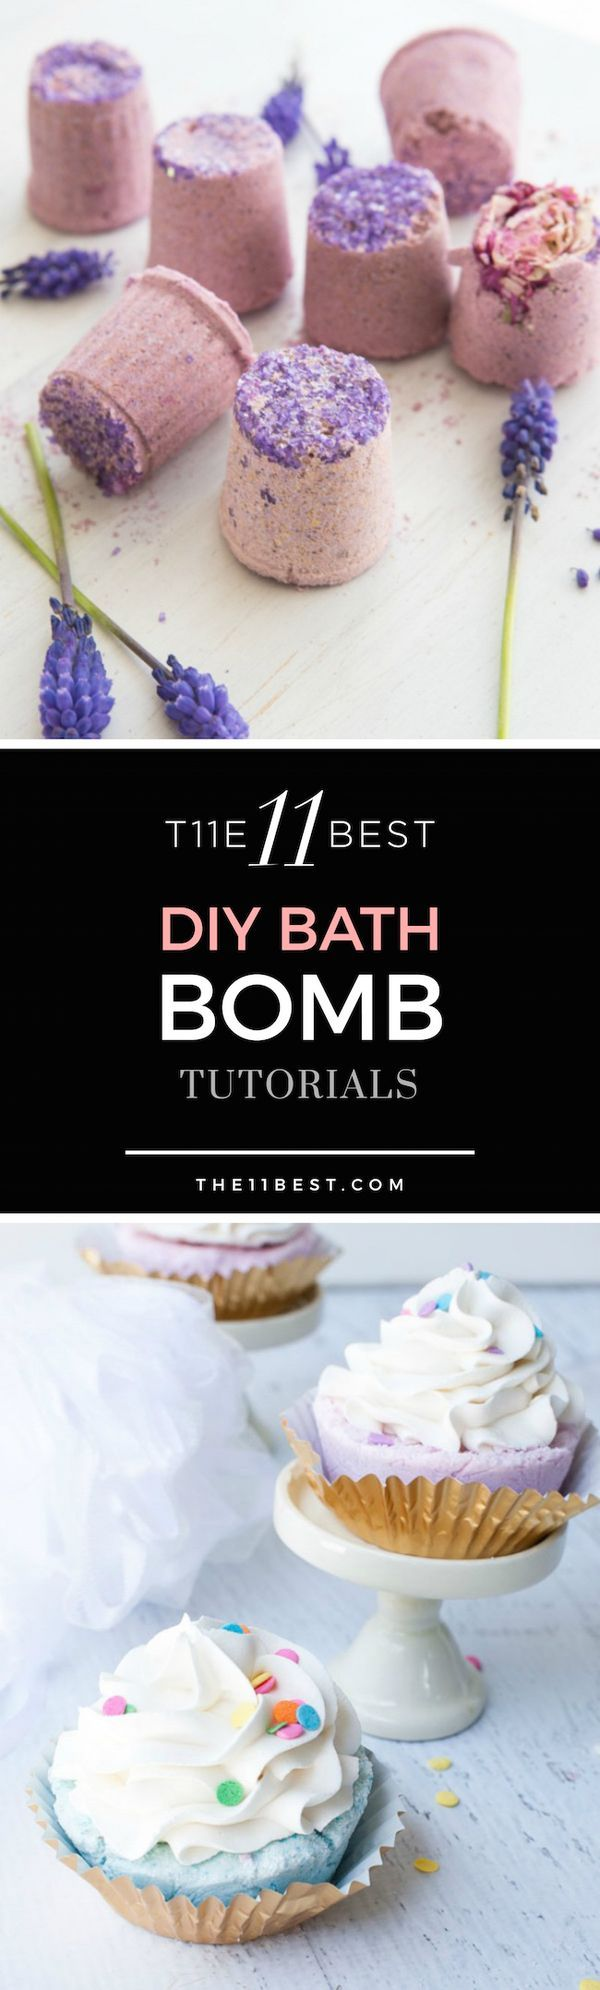 Use these bath bomb recipe ideas to create a nice spa bath for yourself or give them as a gift!